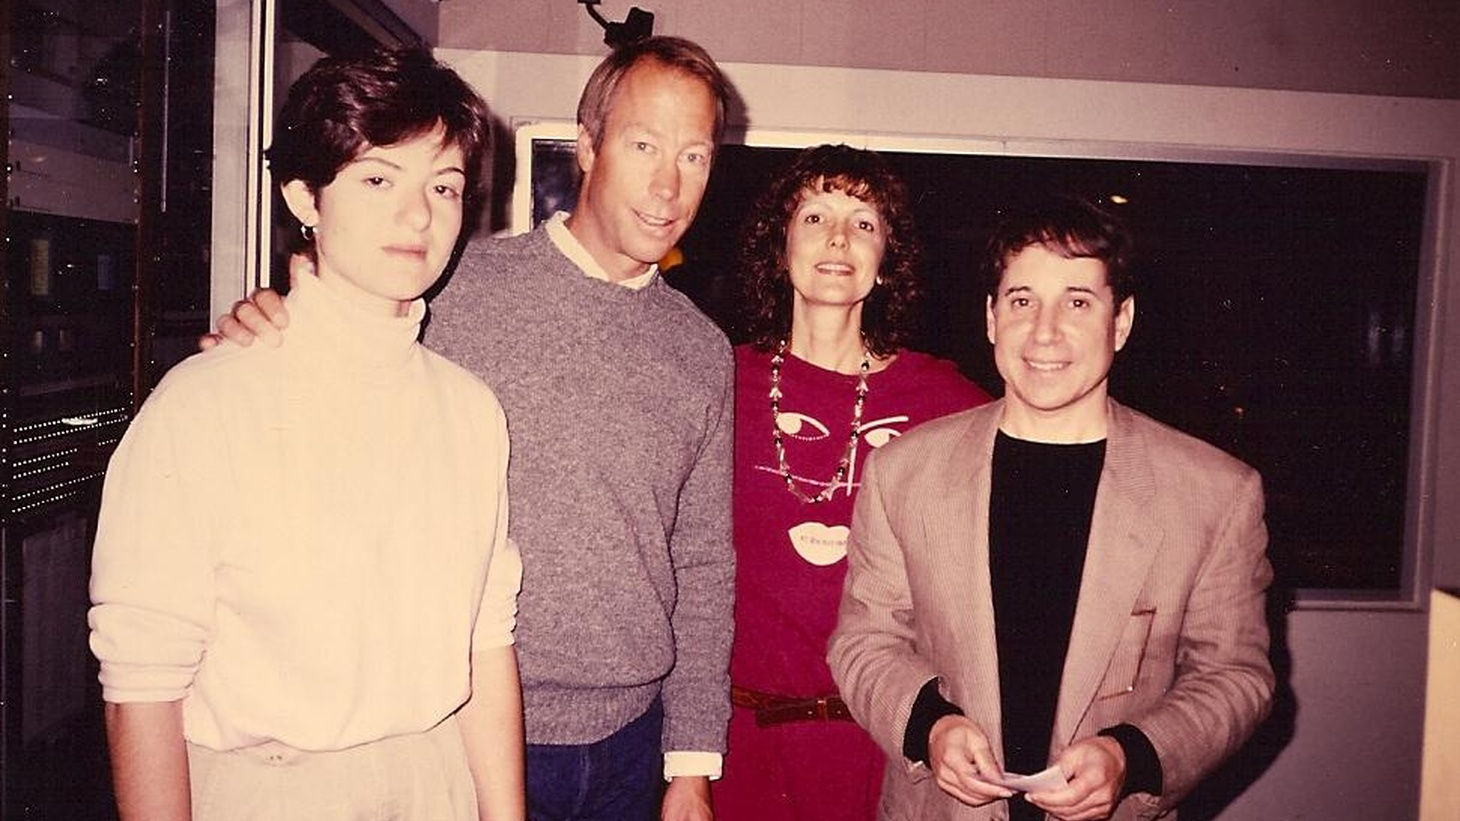 """KCRW was sending Paul Simon cassette tapes of African music years before he recorded """"Graceland"""". After the album came out, the only media interview he did in Los Angeles was with DJ Tom Schnabel, who hosted Morning Becomes Eclectic at the time. Hear a snippet of their conversation, in honor of the 25th anniversary of the CD release."""